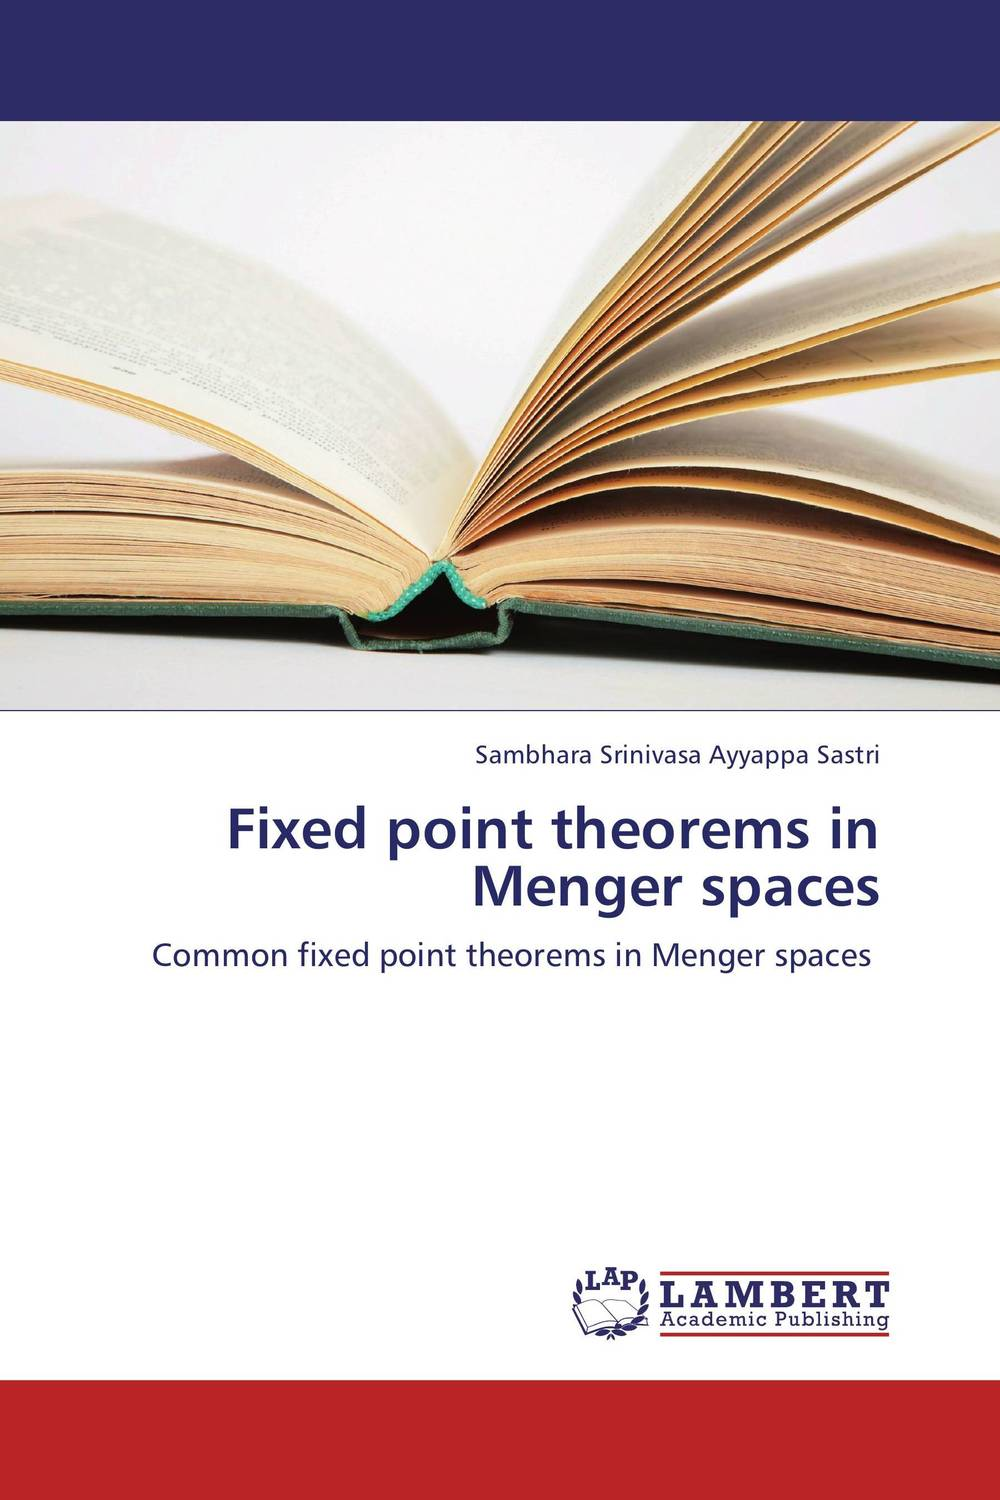 Fixed point theorems in Menger spaces nirmal kumar singh and ravi prakash dubey fixed point theorems in topological spaces with application to fratal